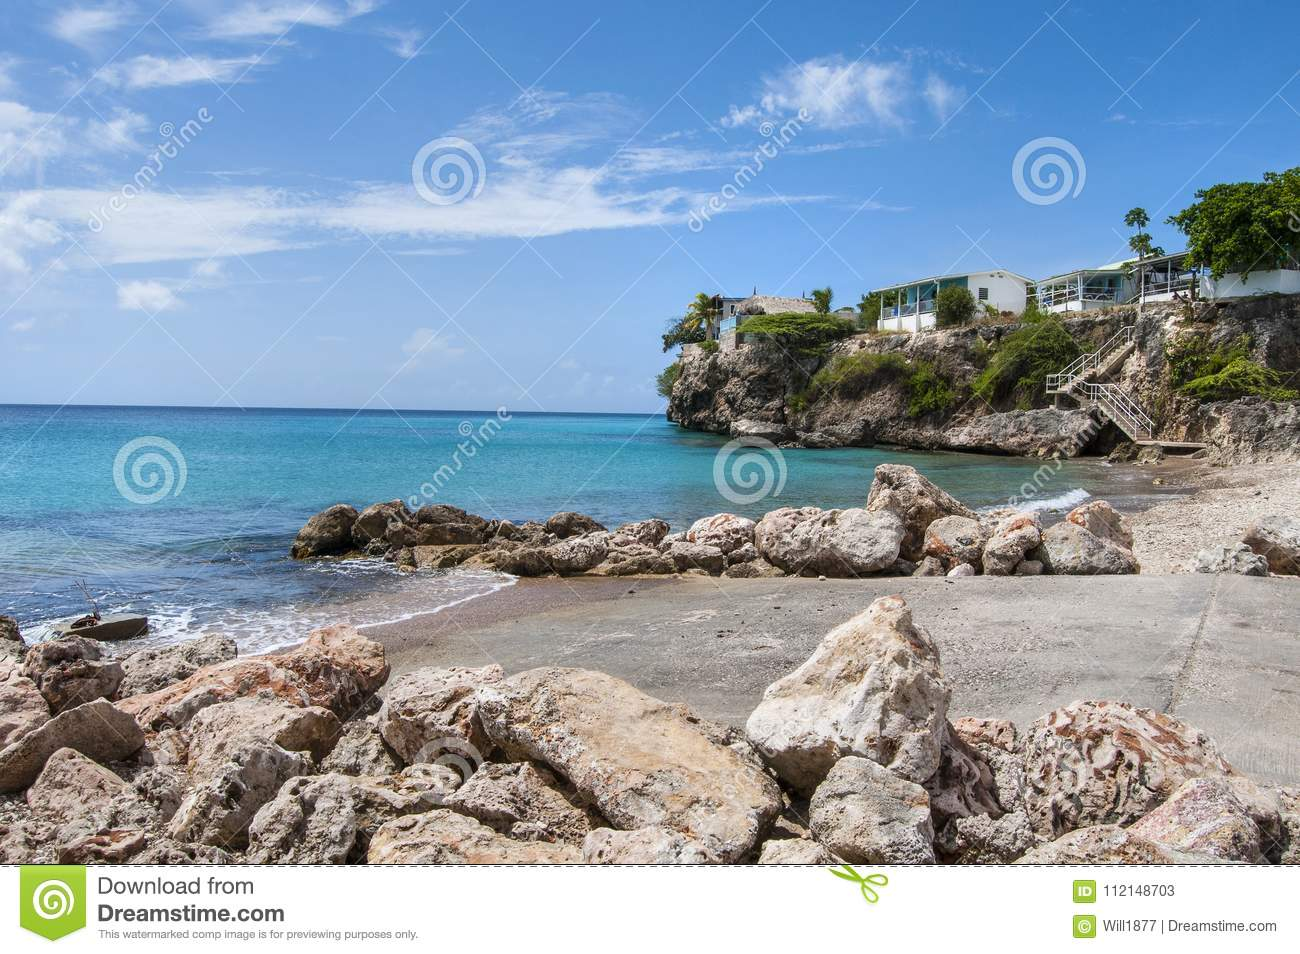 San Pedro Beach In Caribbean Stock Image - Image of shore, pedro